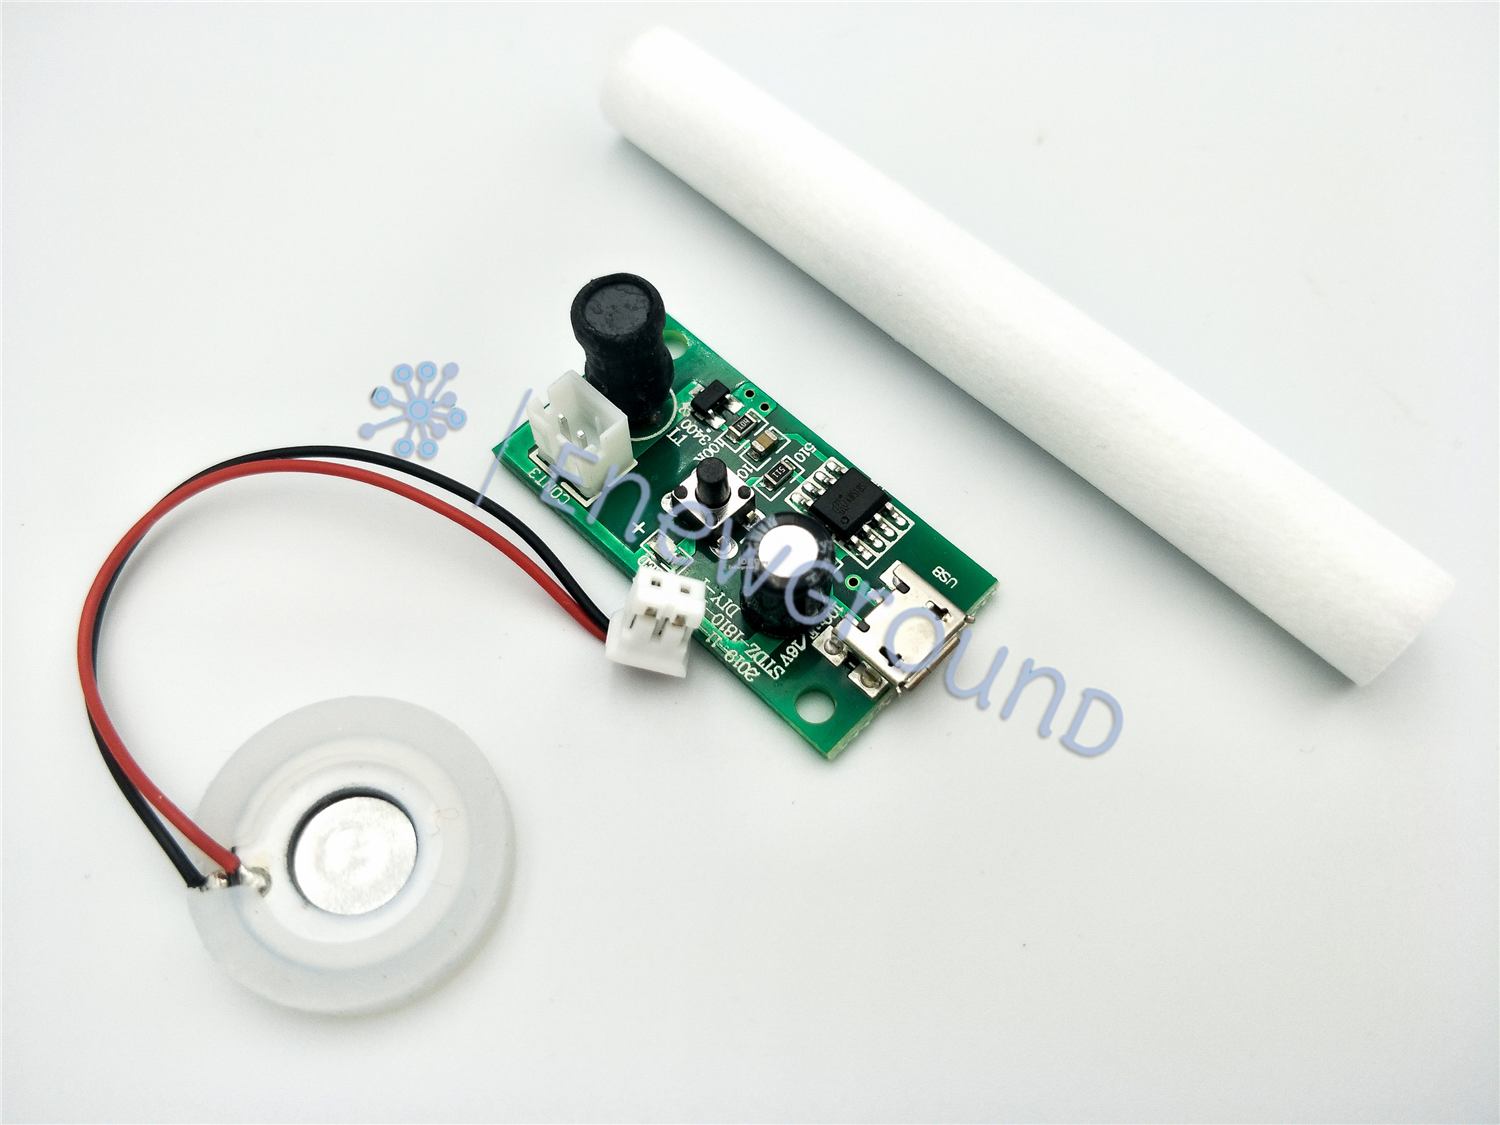 USB DIY air humidifier module with oscillator (Free wool stick)